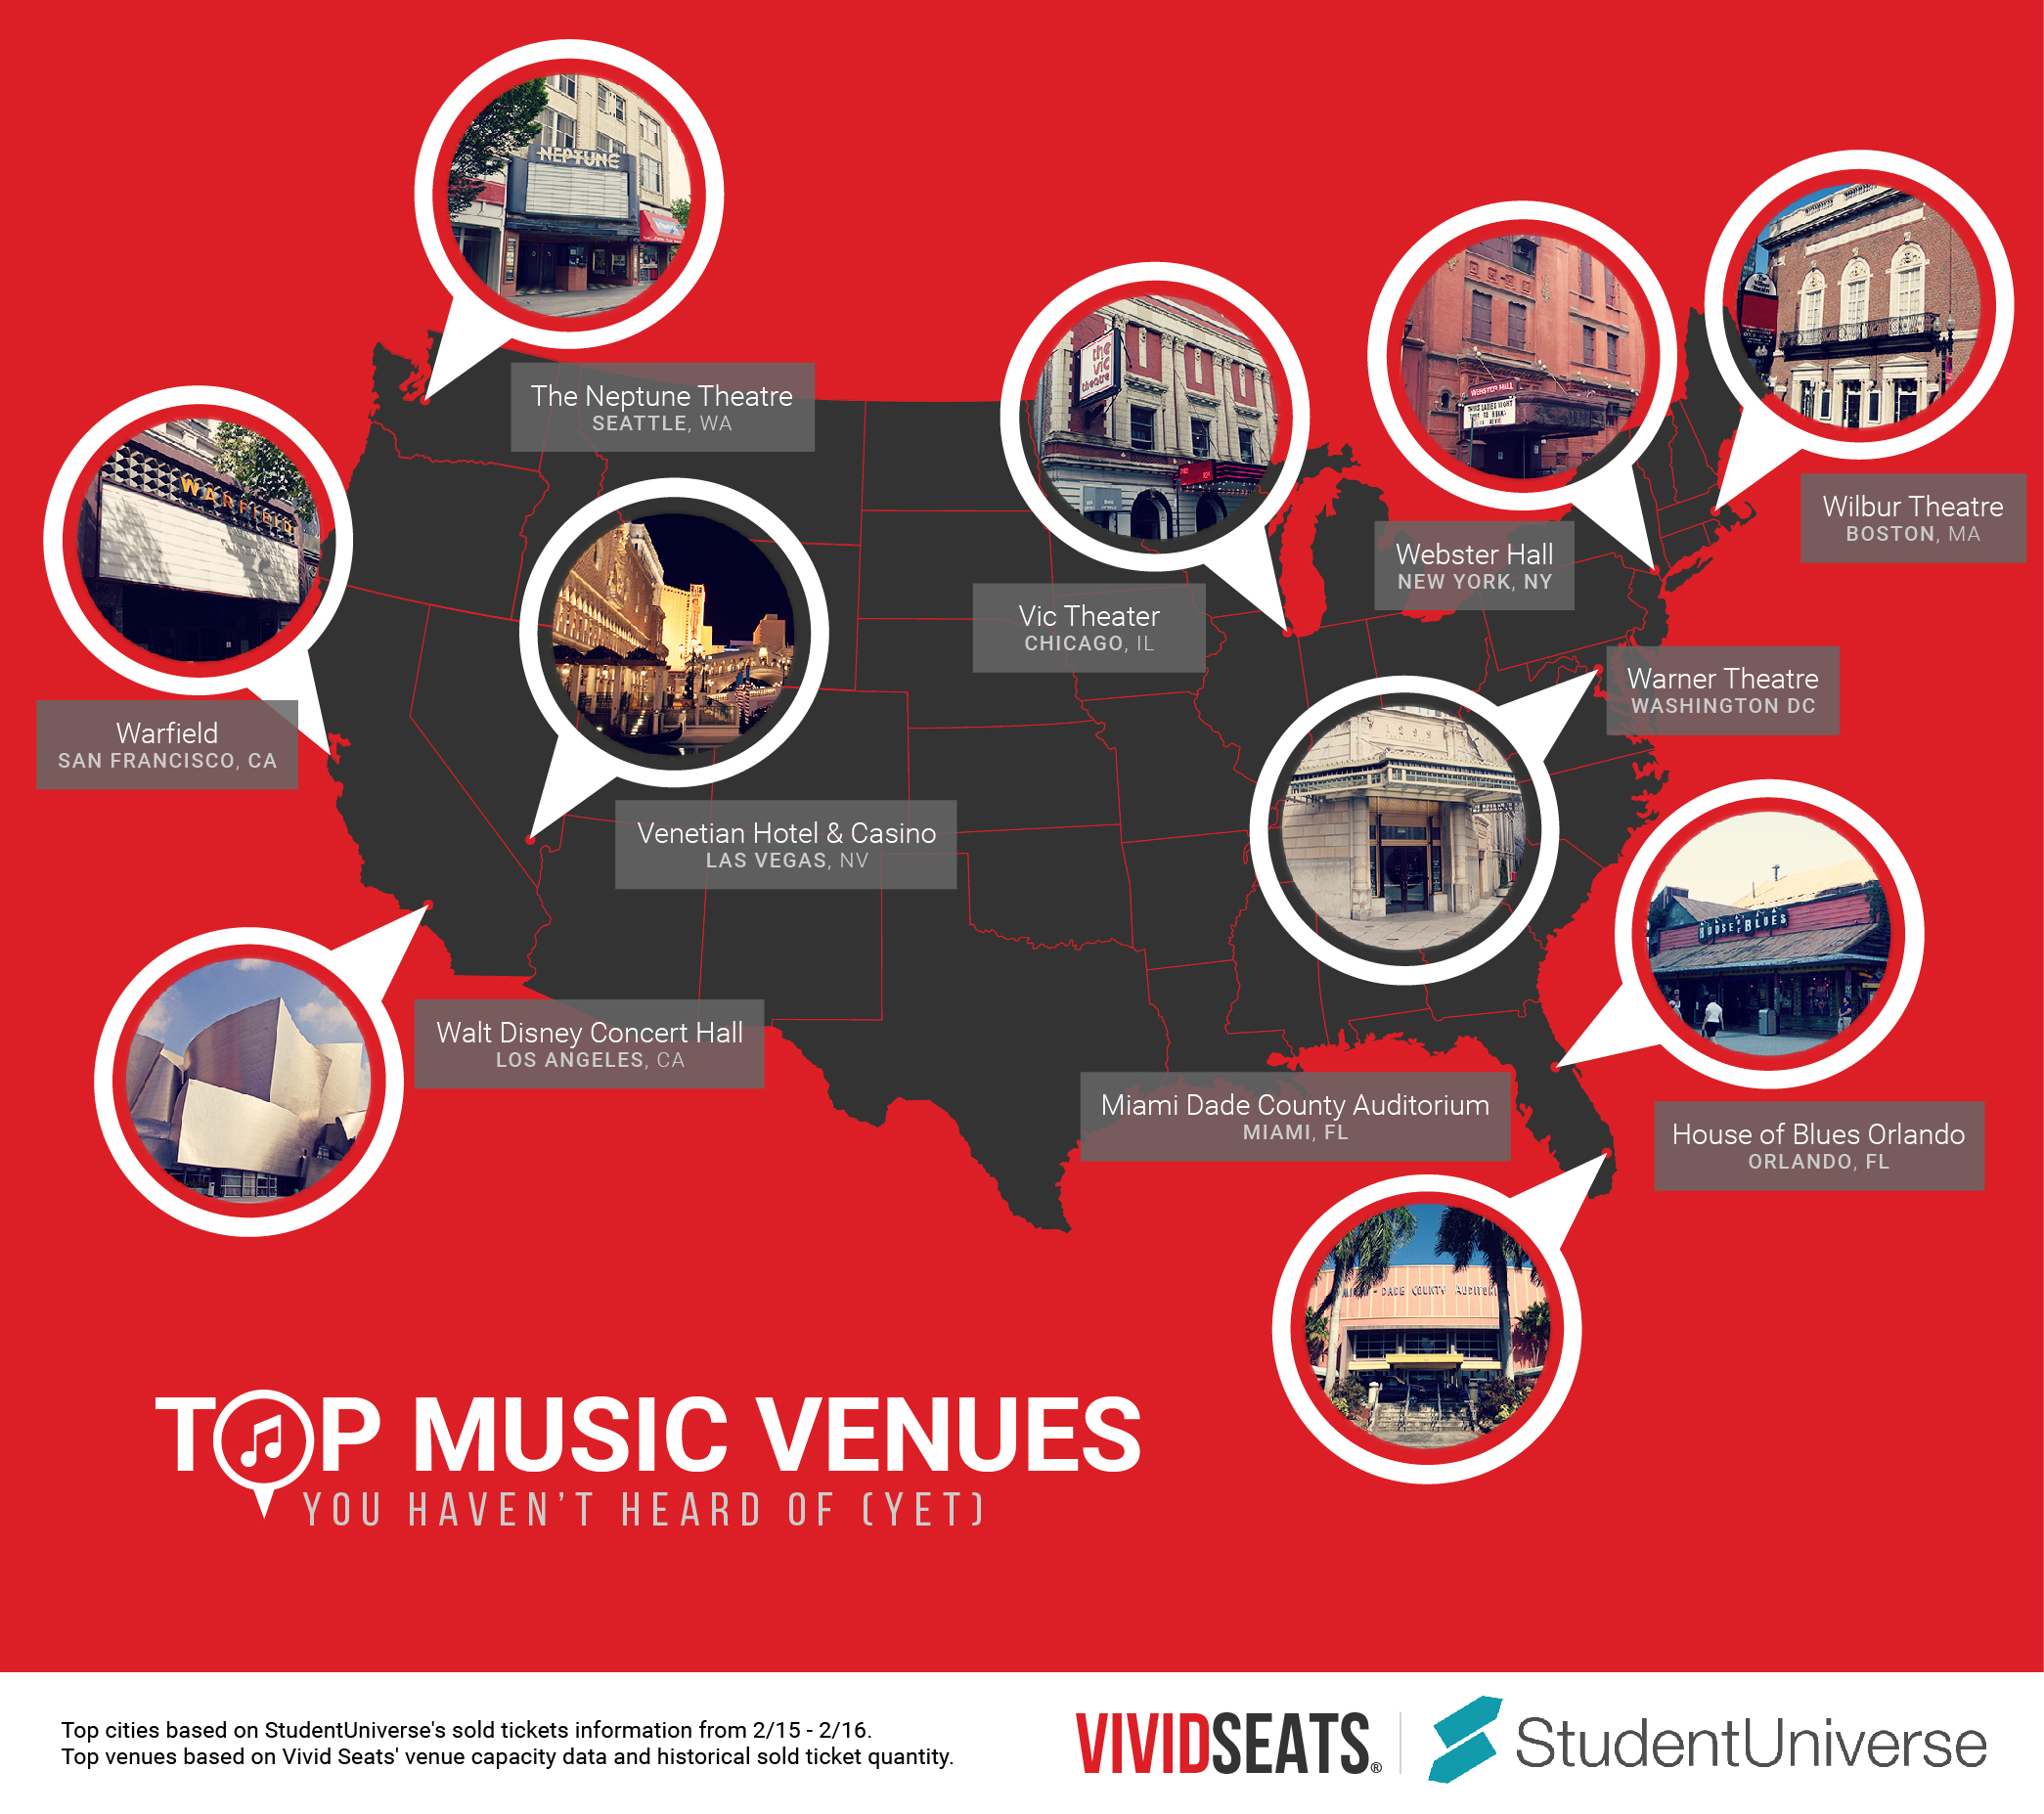 Here's a little more information on each of these venues: